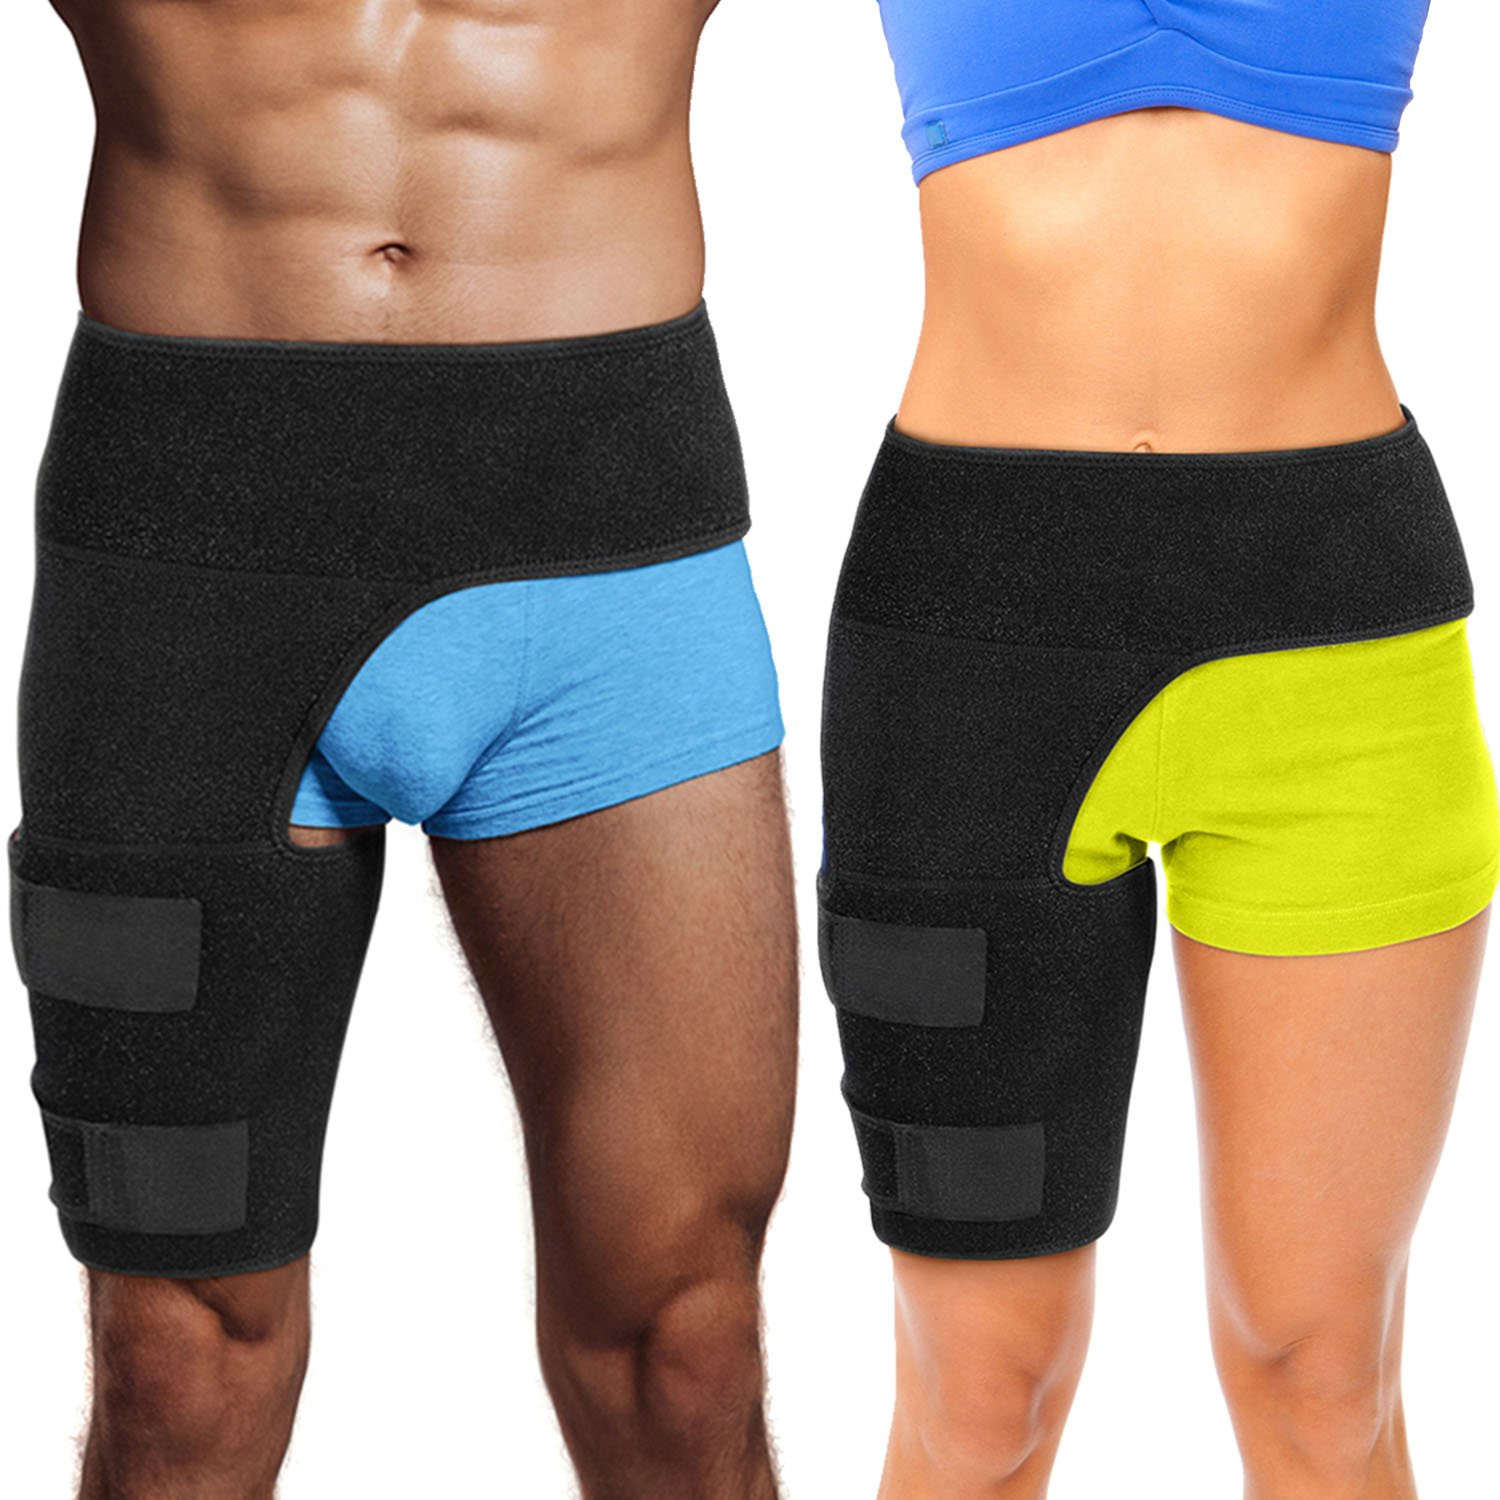 Hip Brace Thigh Compression Sleeve – Hamstring Compression Sleeve & Groin Compression Wrap for Hip Pain Relief. Support for Hip Replacements, Sciatica, Quad Muscle Strains Fits Both Legs Men & Women